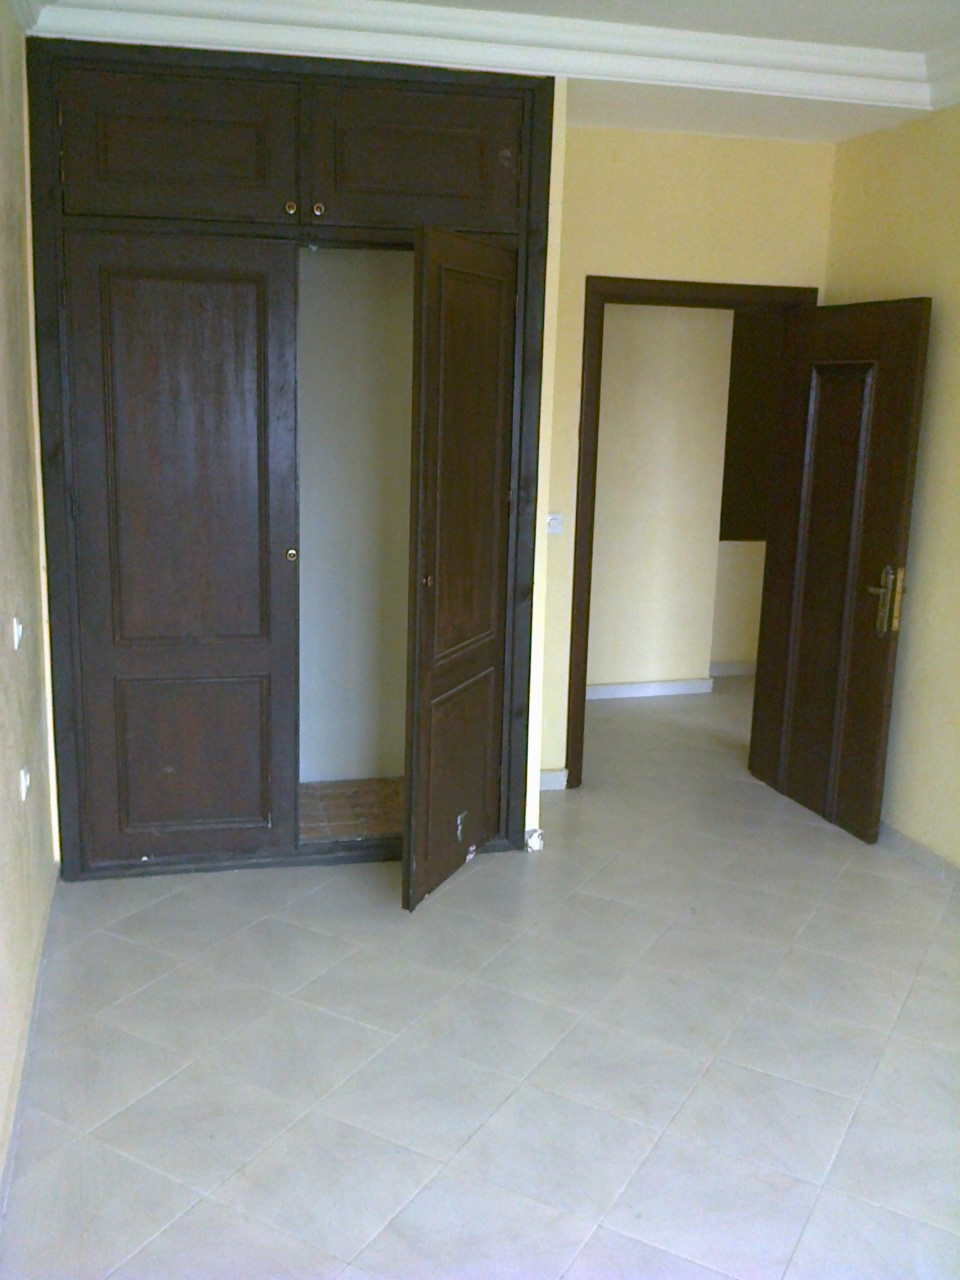 Location appartement tanger maroc pour vacance for Appartement a louer